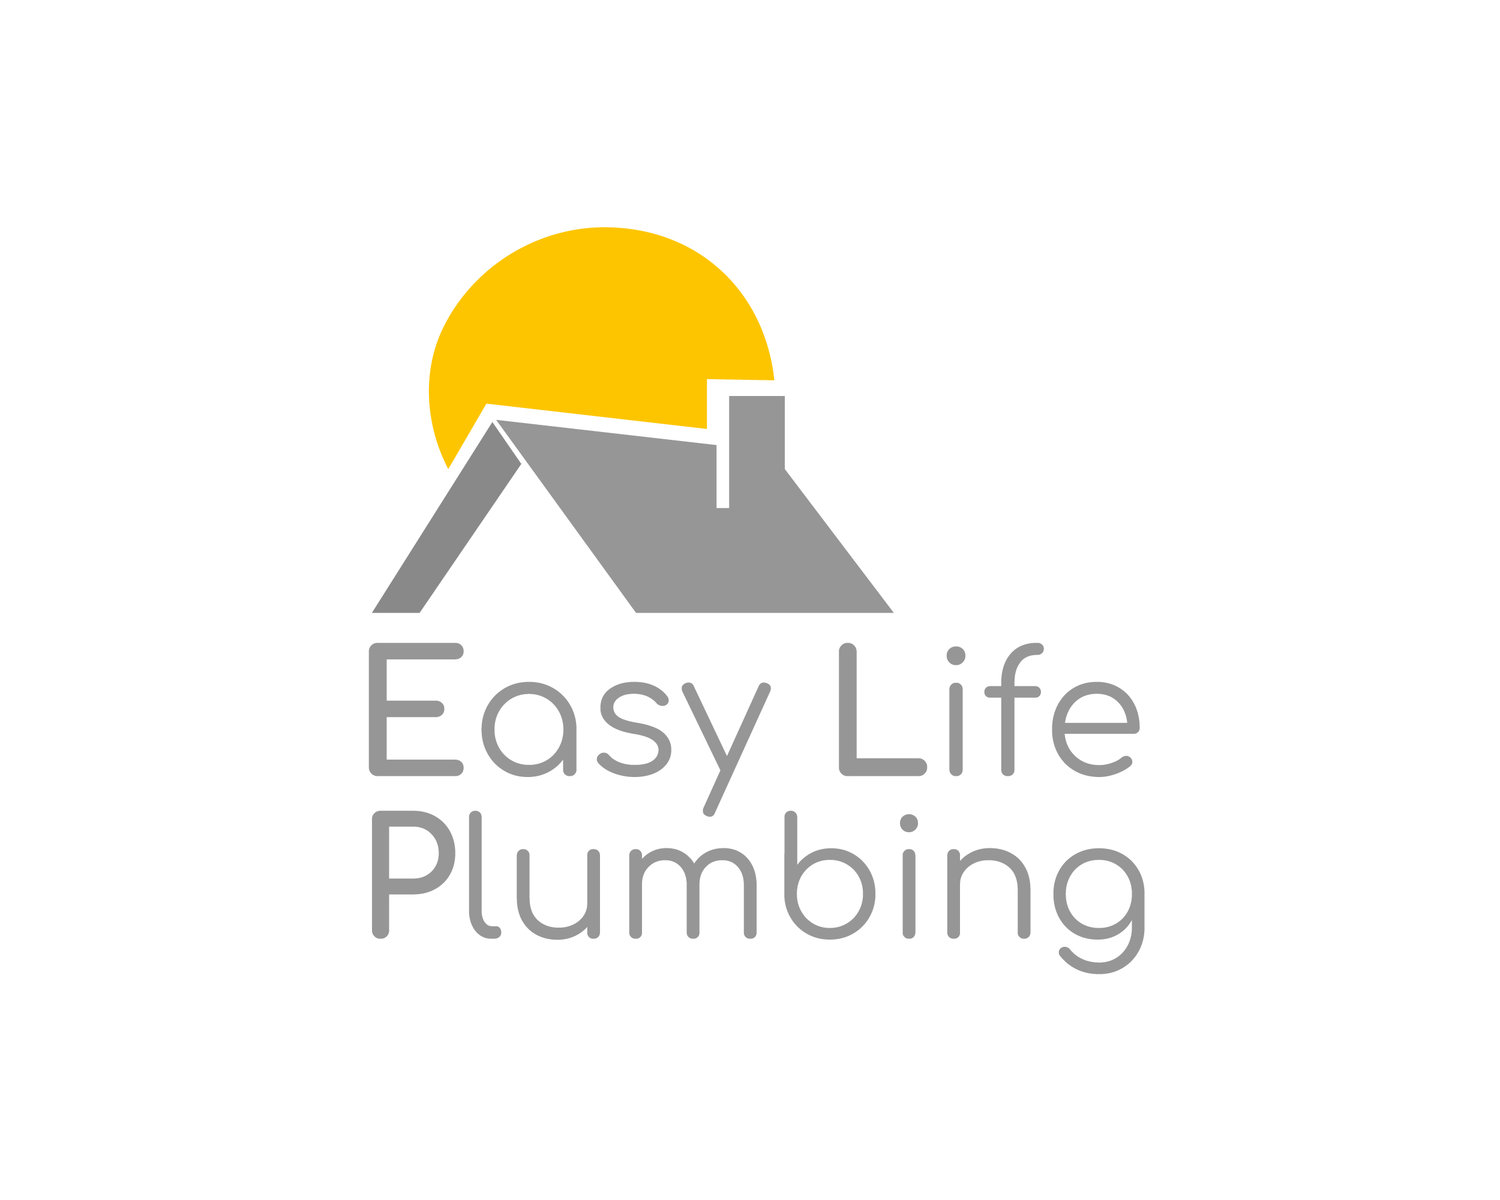 Easy Life Plumbing and Heating-  Scottish Borders and Edinburgh Scotland.